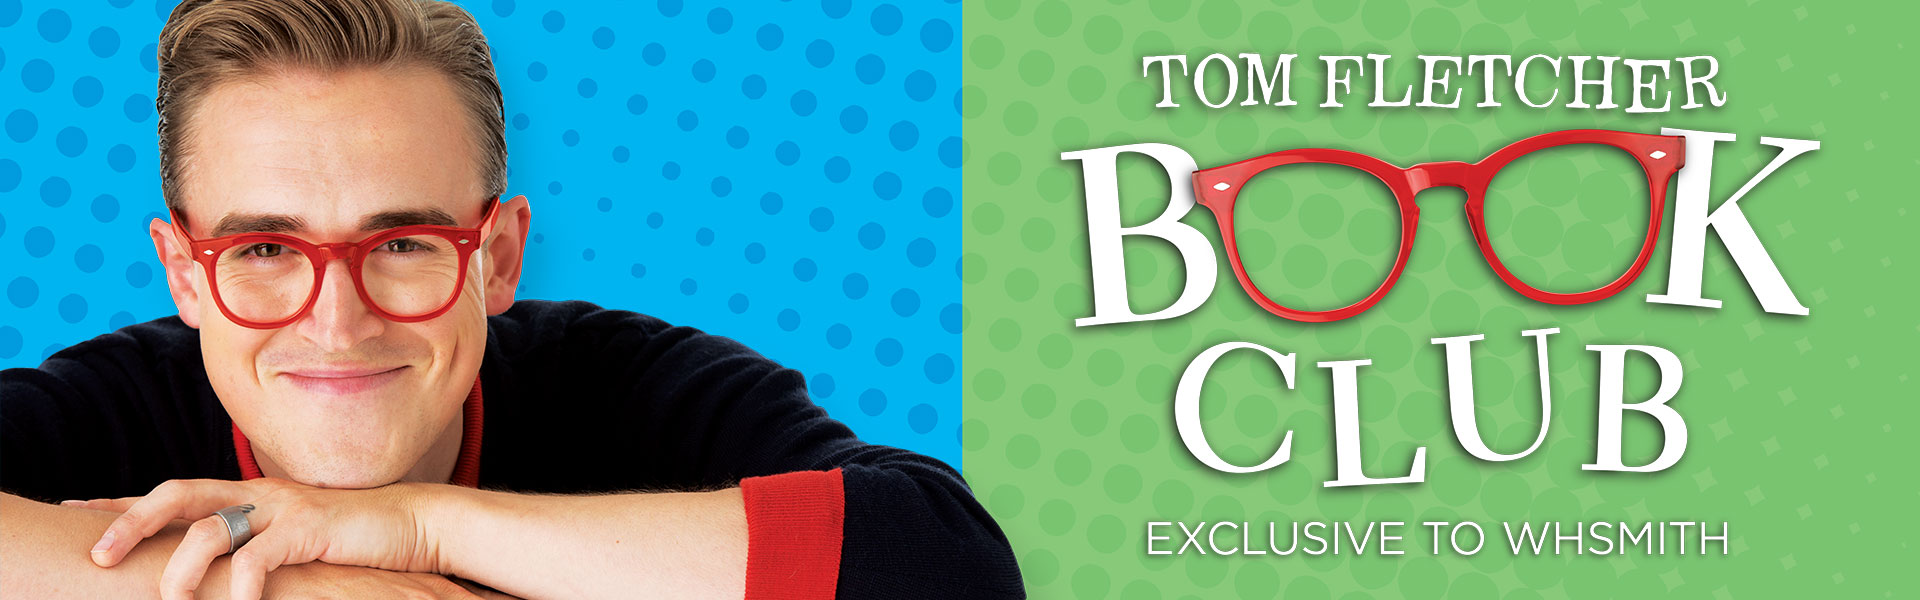 The Tom Fletcher Book Club Exclusive to WHSmith